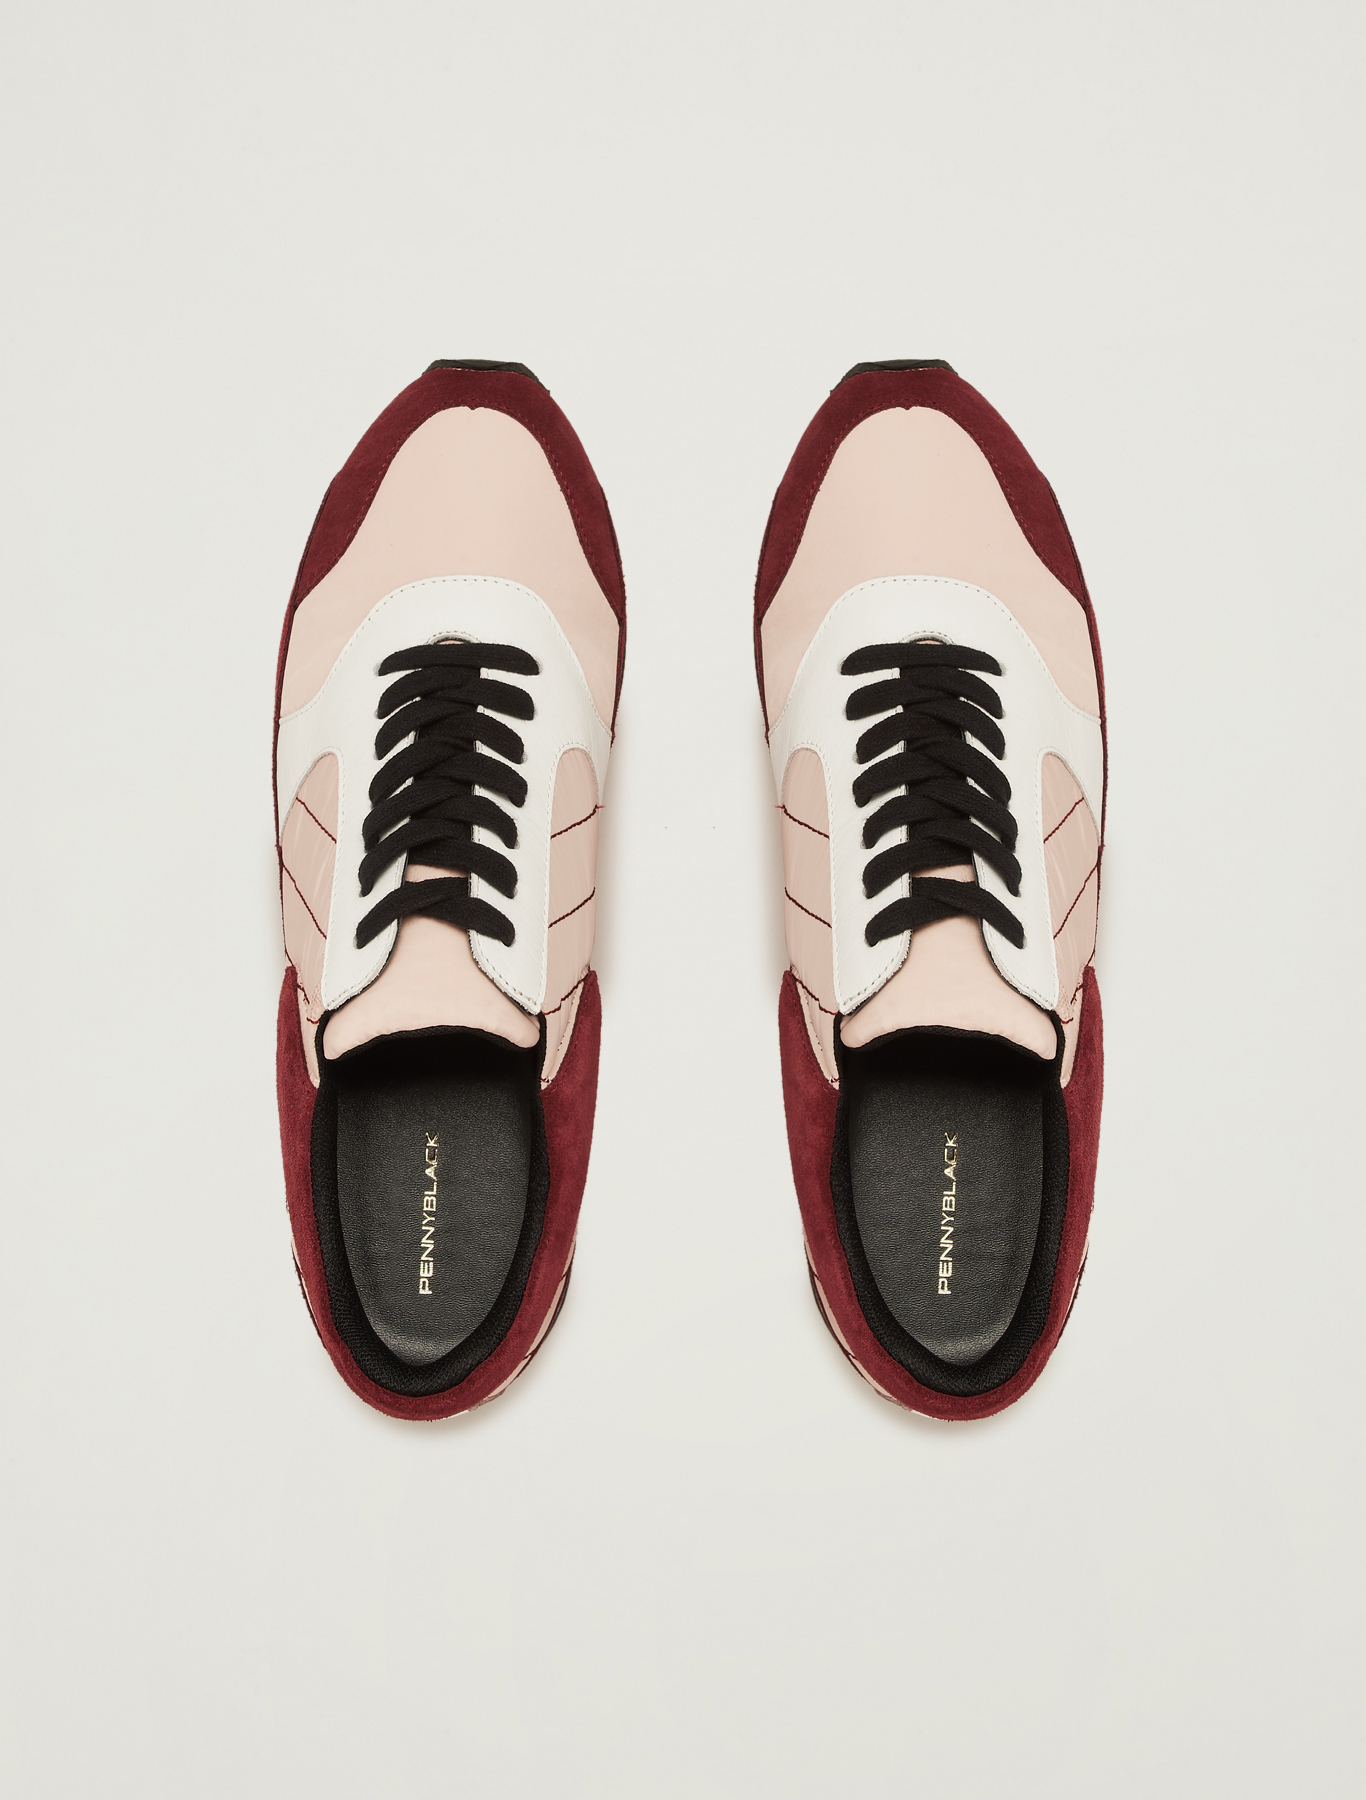 Sneakers in suede, leather and nylon - burgundy - pennyblack